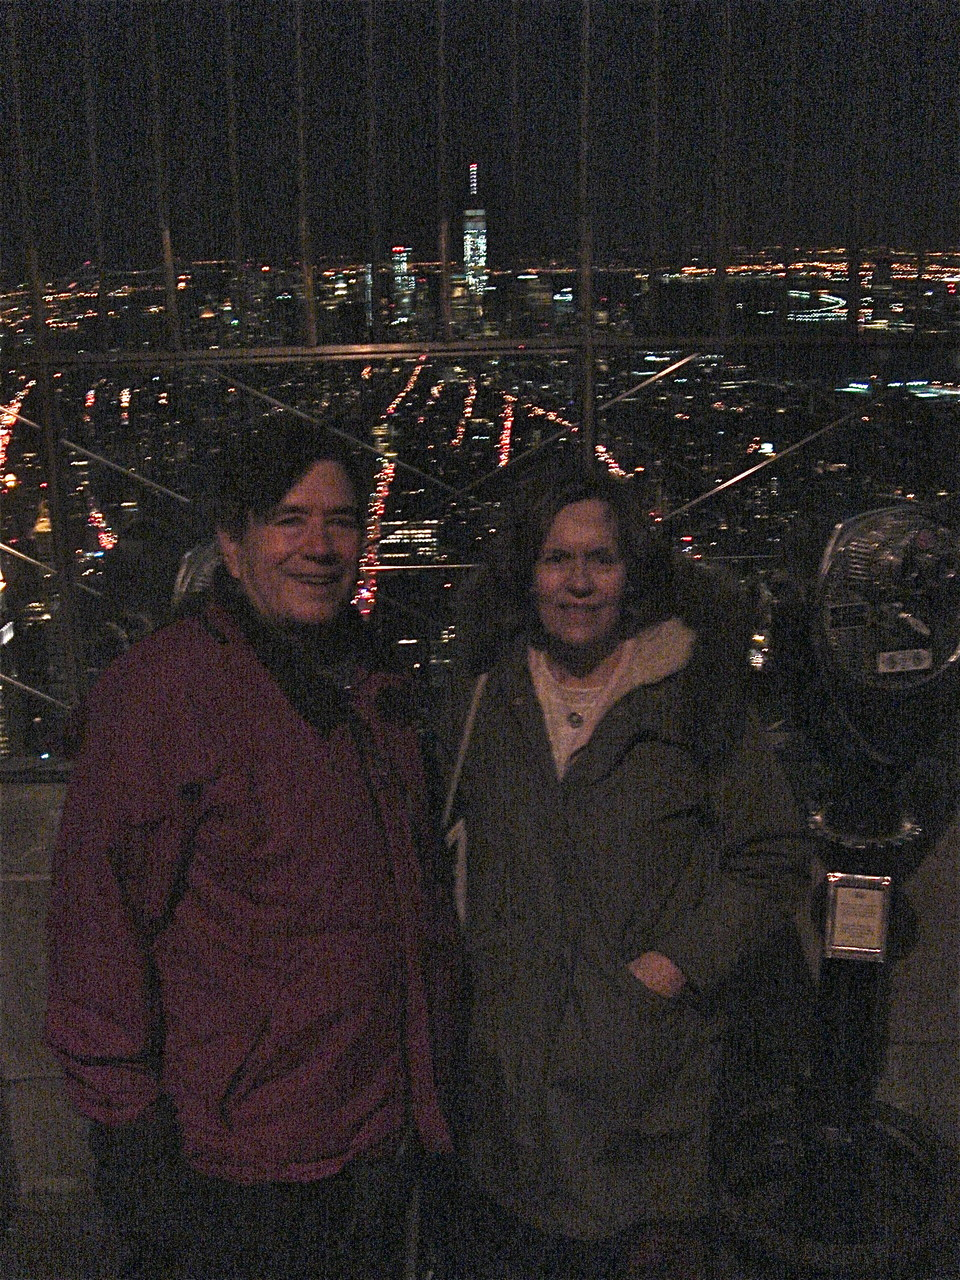 John and Lorraine, 2-28-15 looking south from the Empire State, Freedom Tower in bkground Building